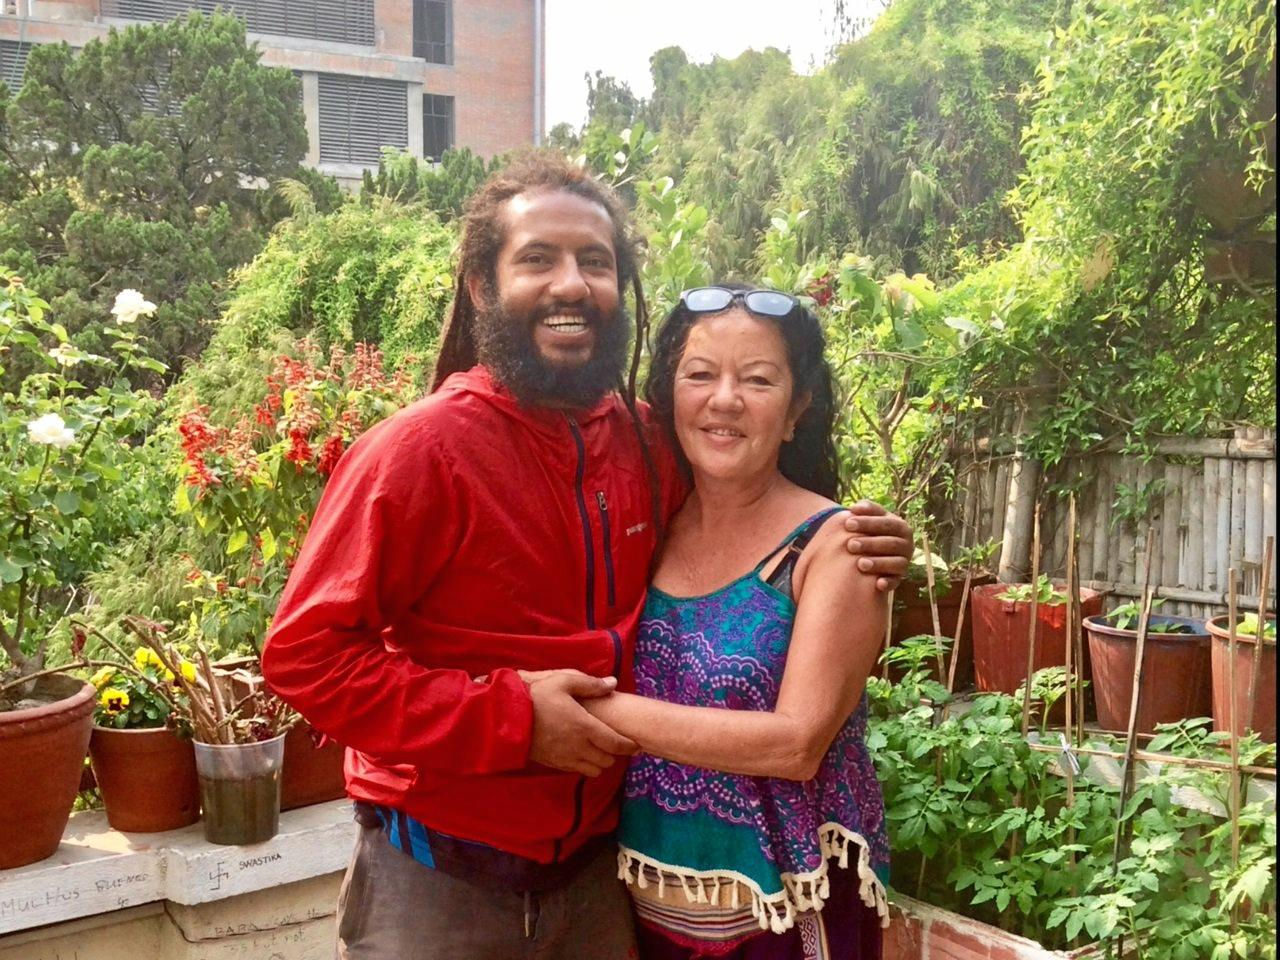 ALL HEART: Sunshine Coast traveller Kaz Sheakespeare and her friend Om, who is rebuilding schools in an earthquake-ravaged region of Nepal.